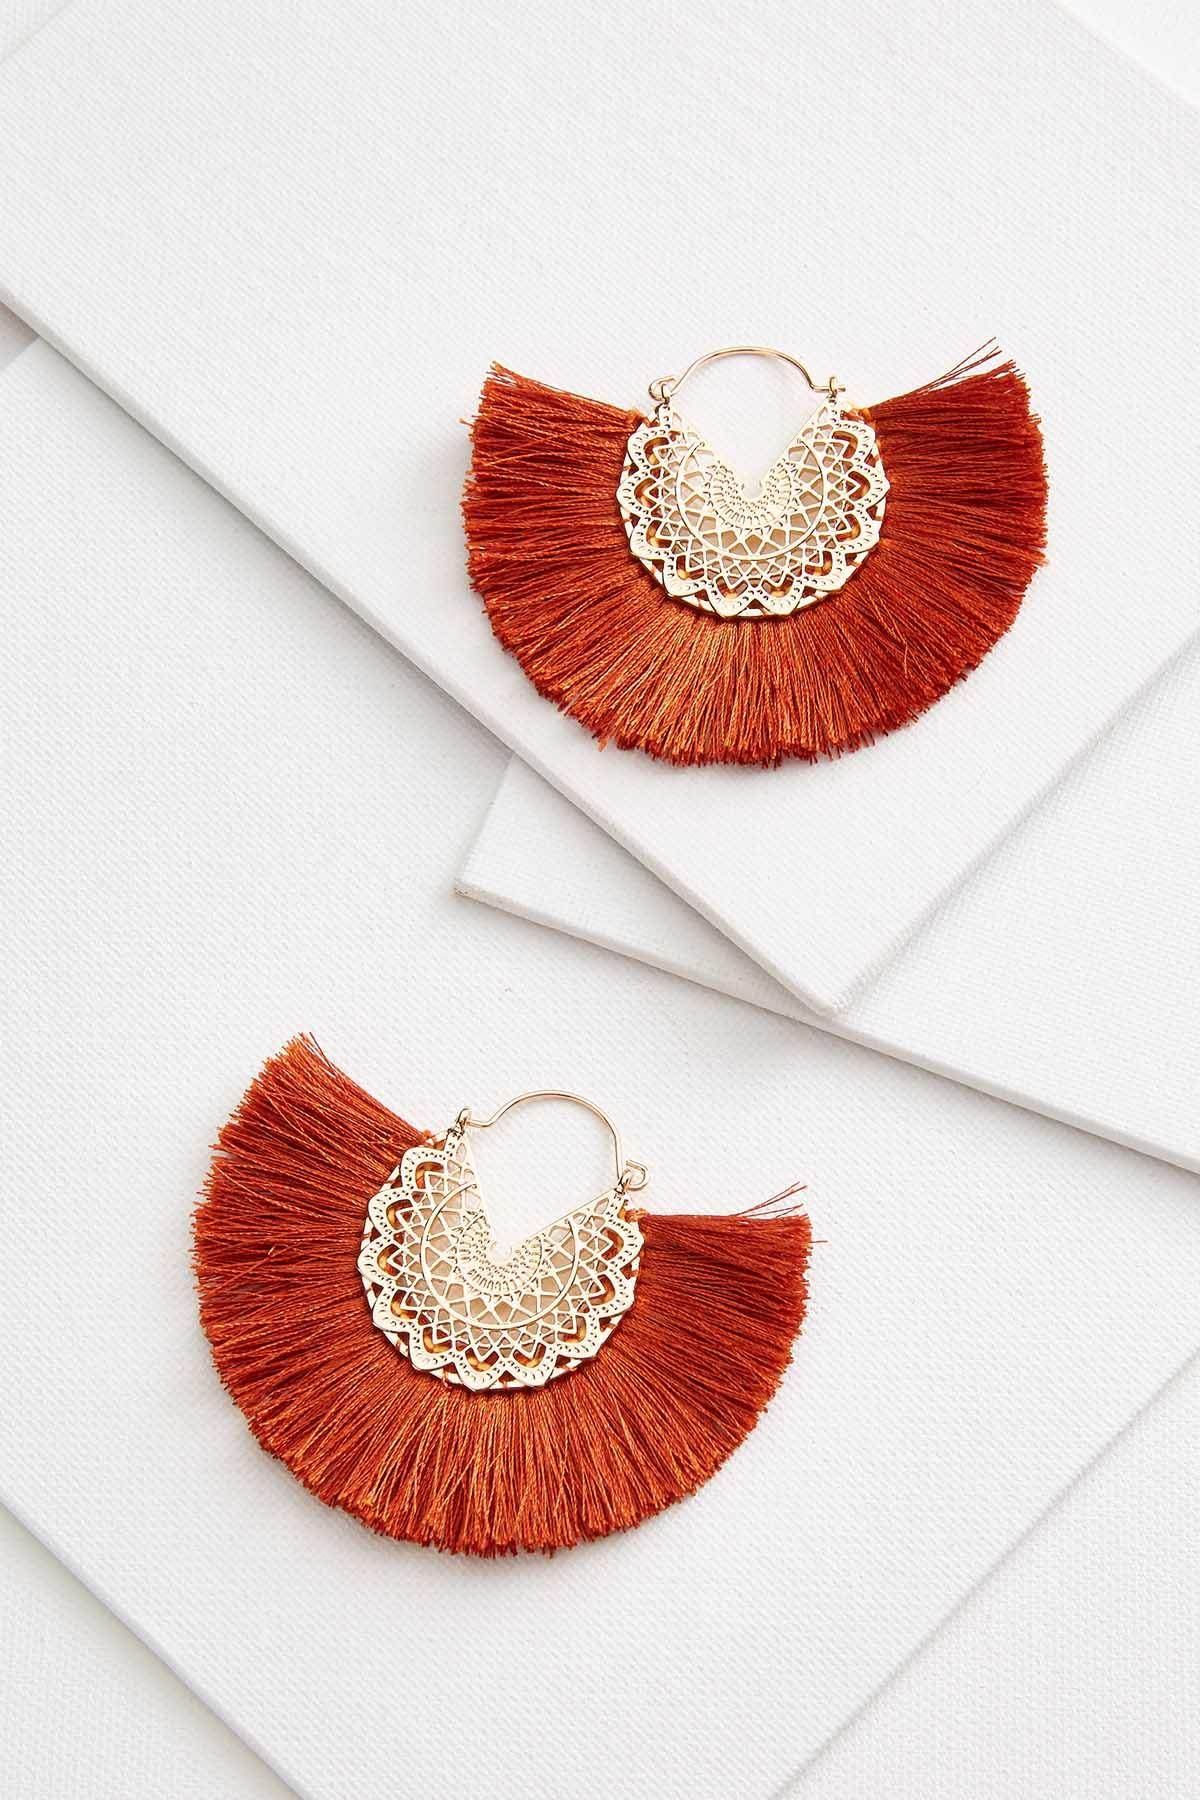 Medallion Fringe Earrings